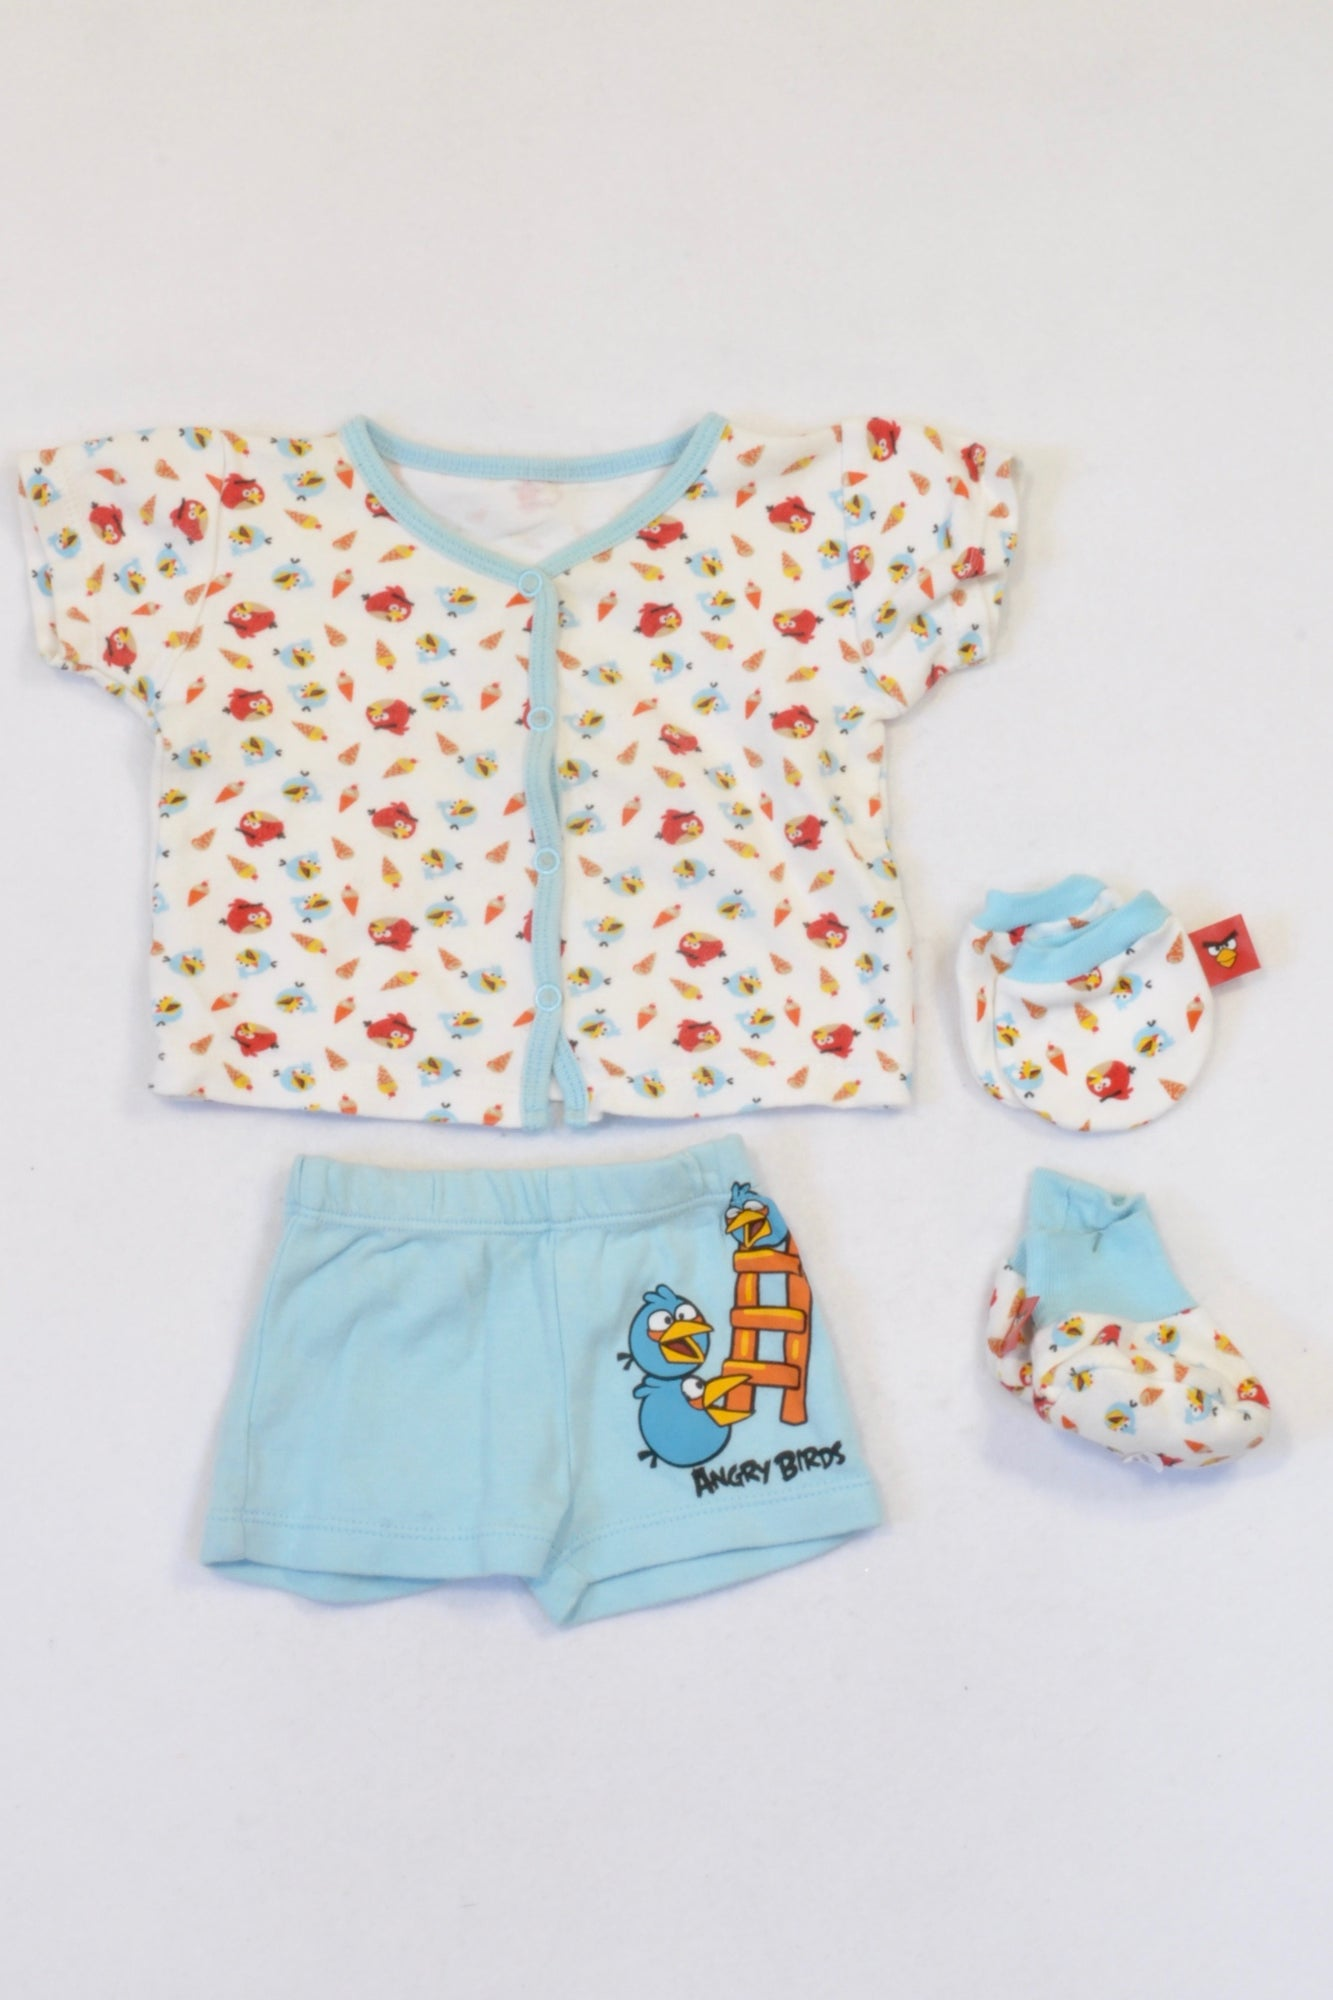 White & Blue Angry Birds Top, Shorts & Booties Outfit Boys 0-3 months